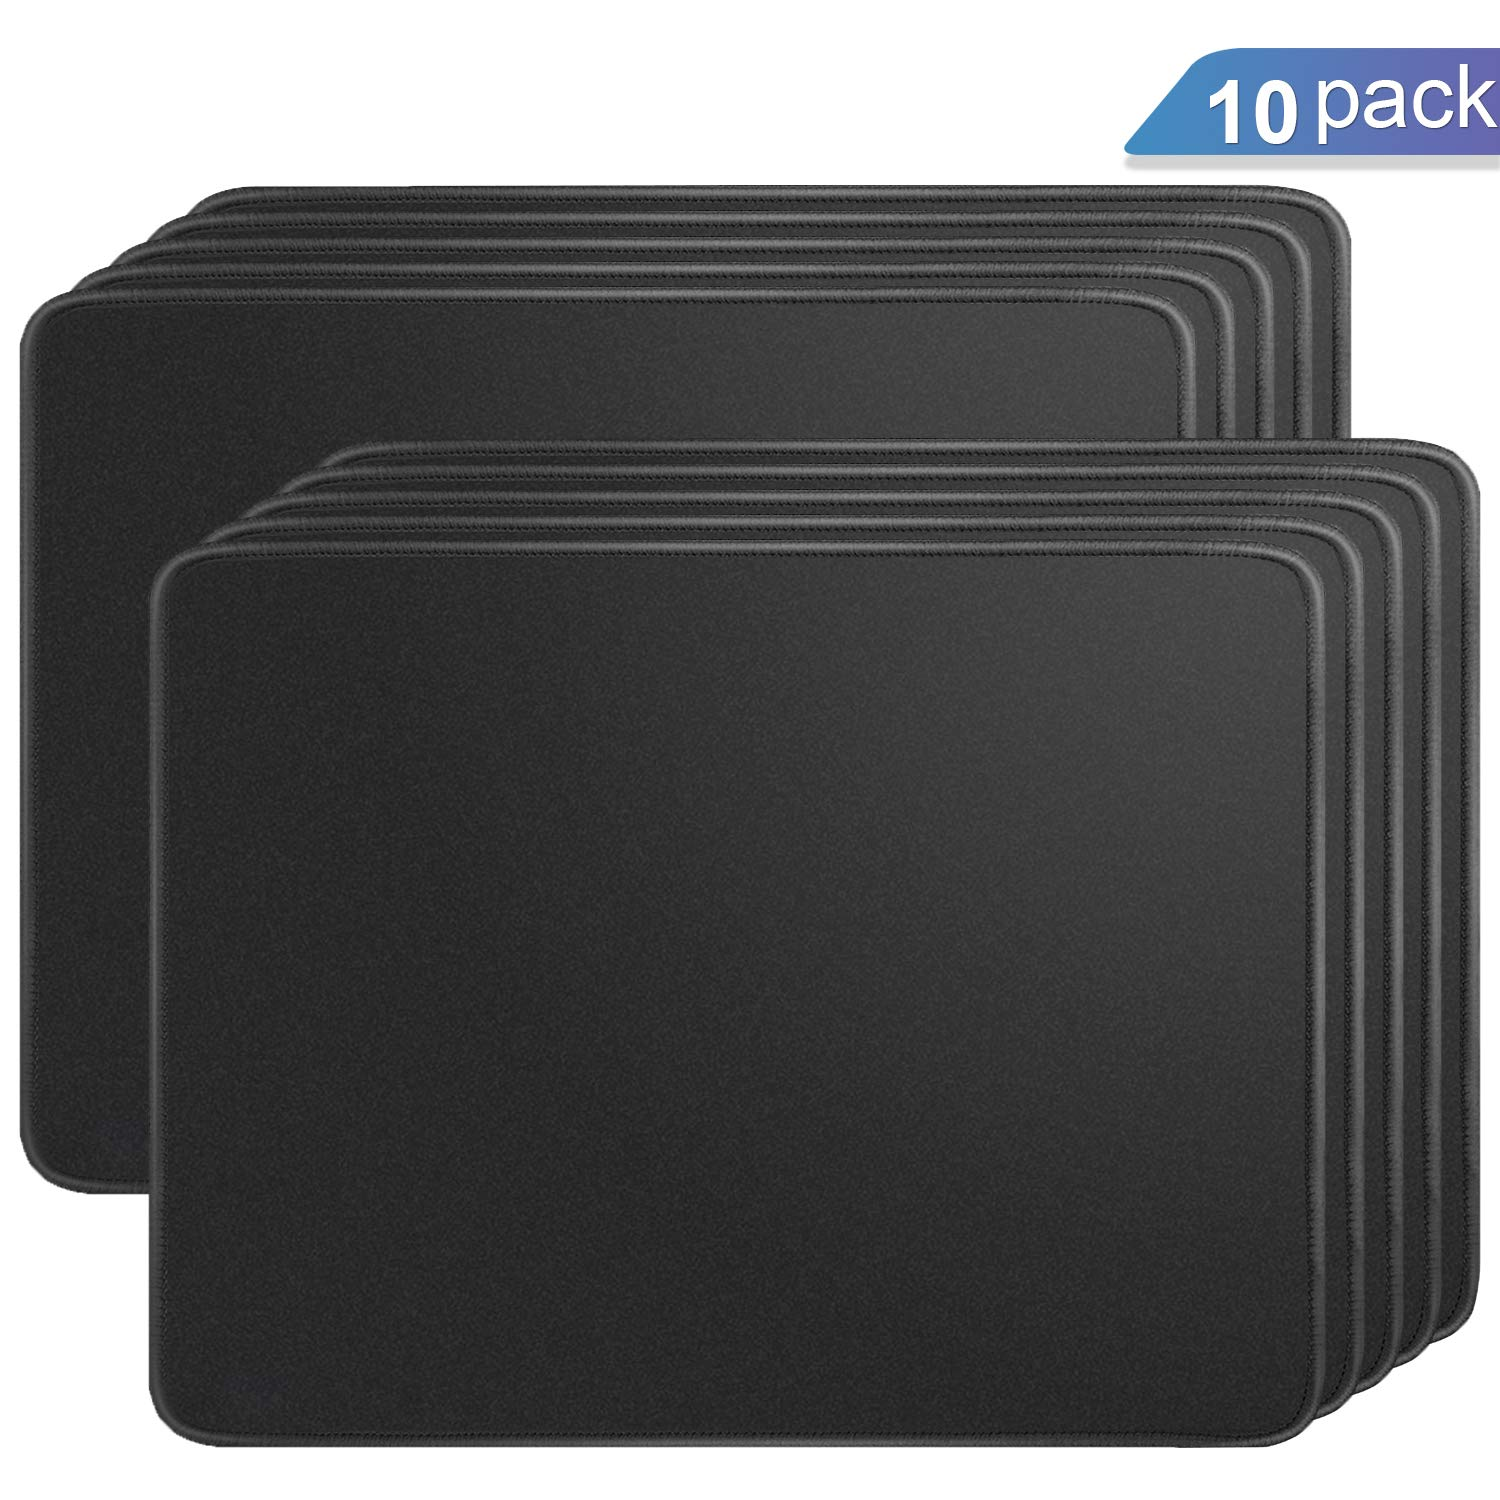 Ktrio 10 Pack Mouse Pad with Stitched Edges Mousepads Bulk with Lycra Cloth, Non-Slip Rubber Base, Waterproof Coating Mouse Pads for Computers, Laptop, Office & Home, 11x8.5in, 3mm, Black by KTRIO